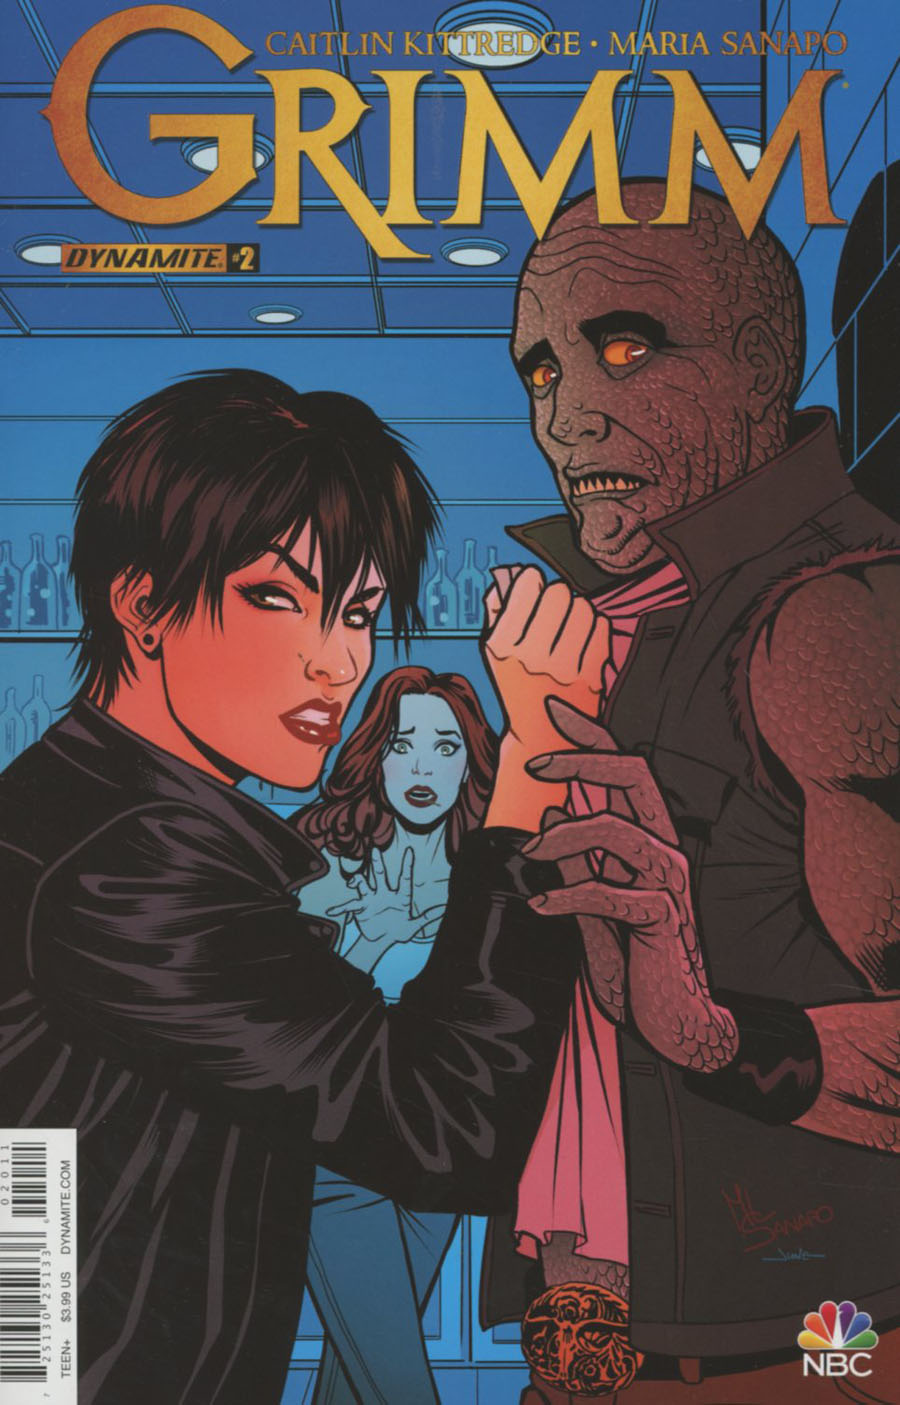 Grimm Vol 2 #2 Cover A Regular Maria Sanapo Cover